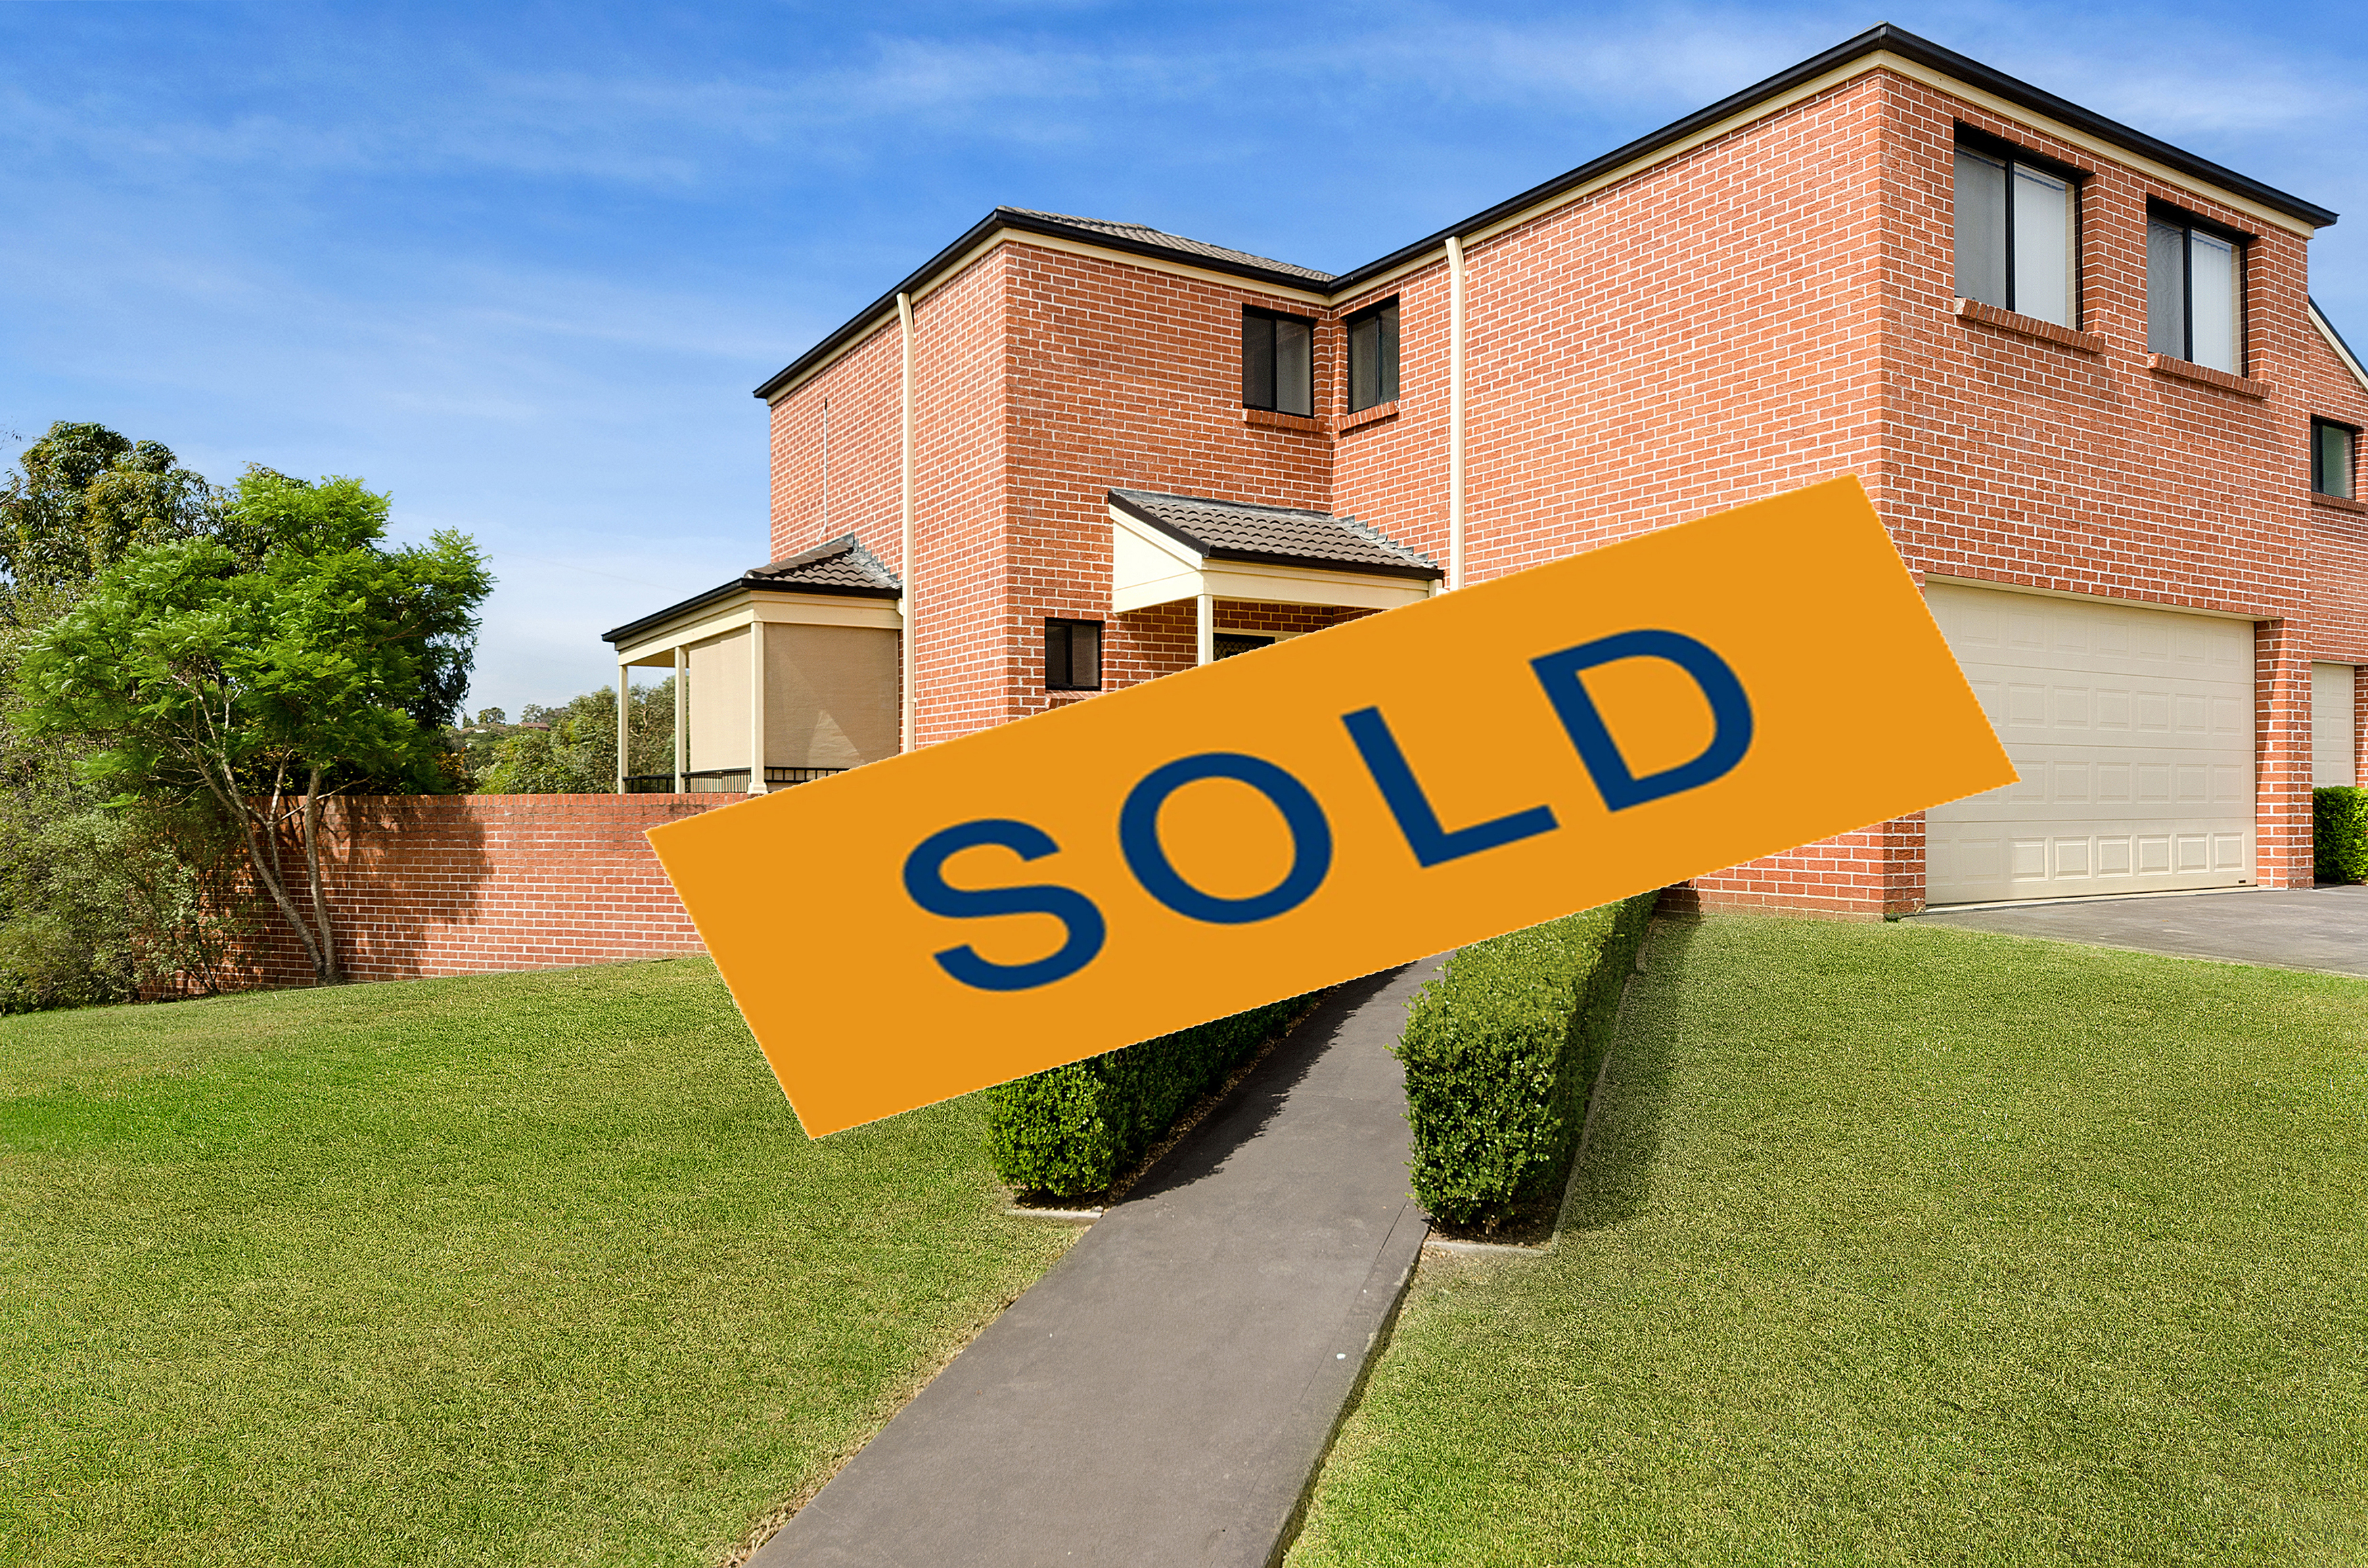 Knows the market and provided a realistic indication of property value